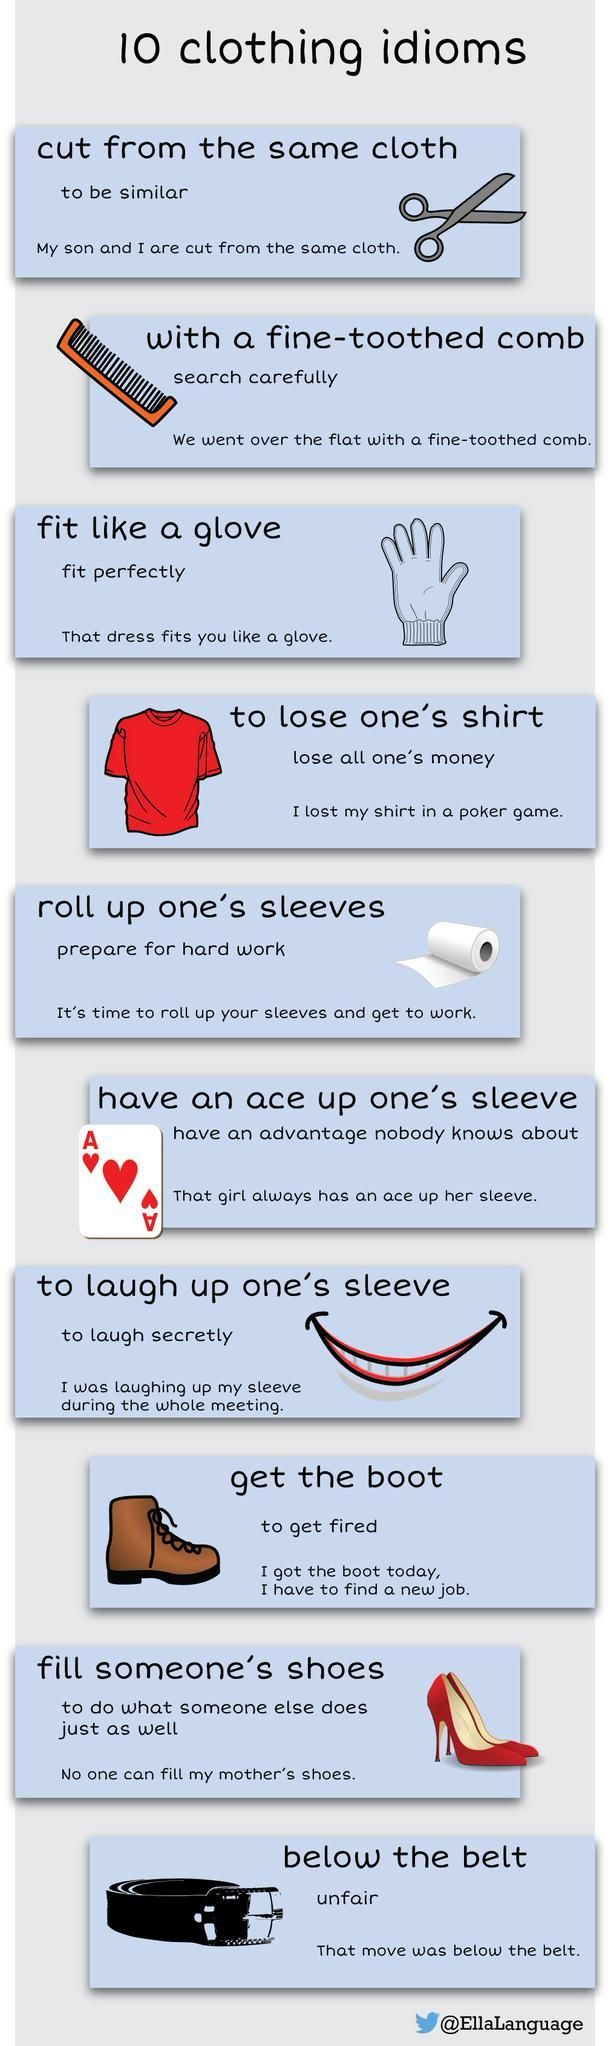 103 best english images on pinterest languages learning english 10 clothing idioms d fandeluxe